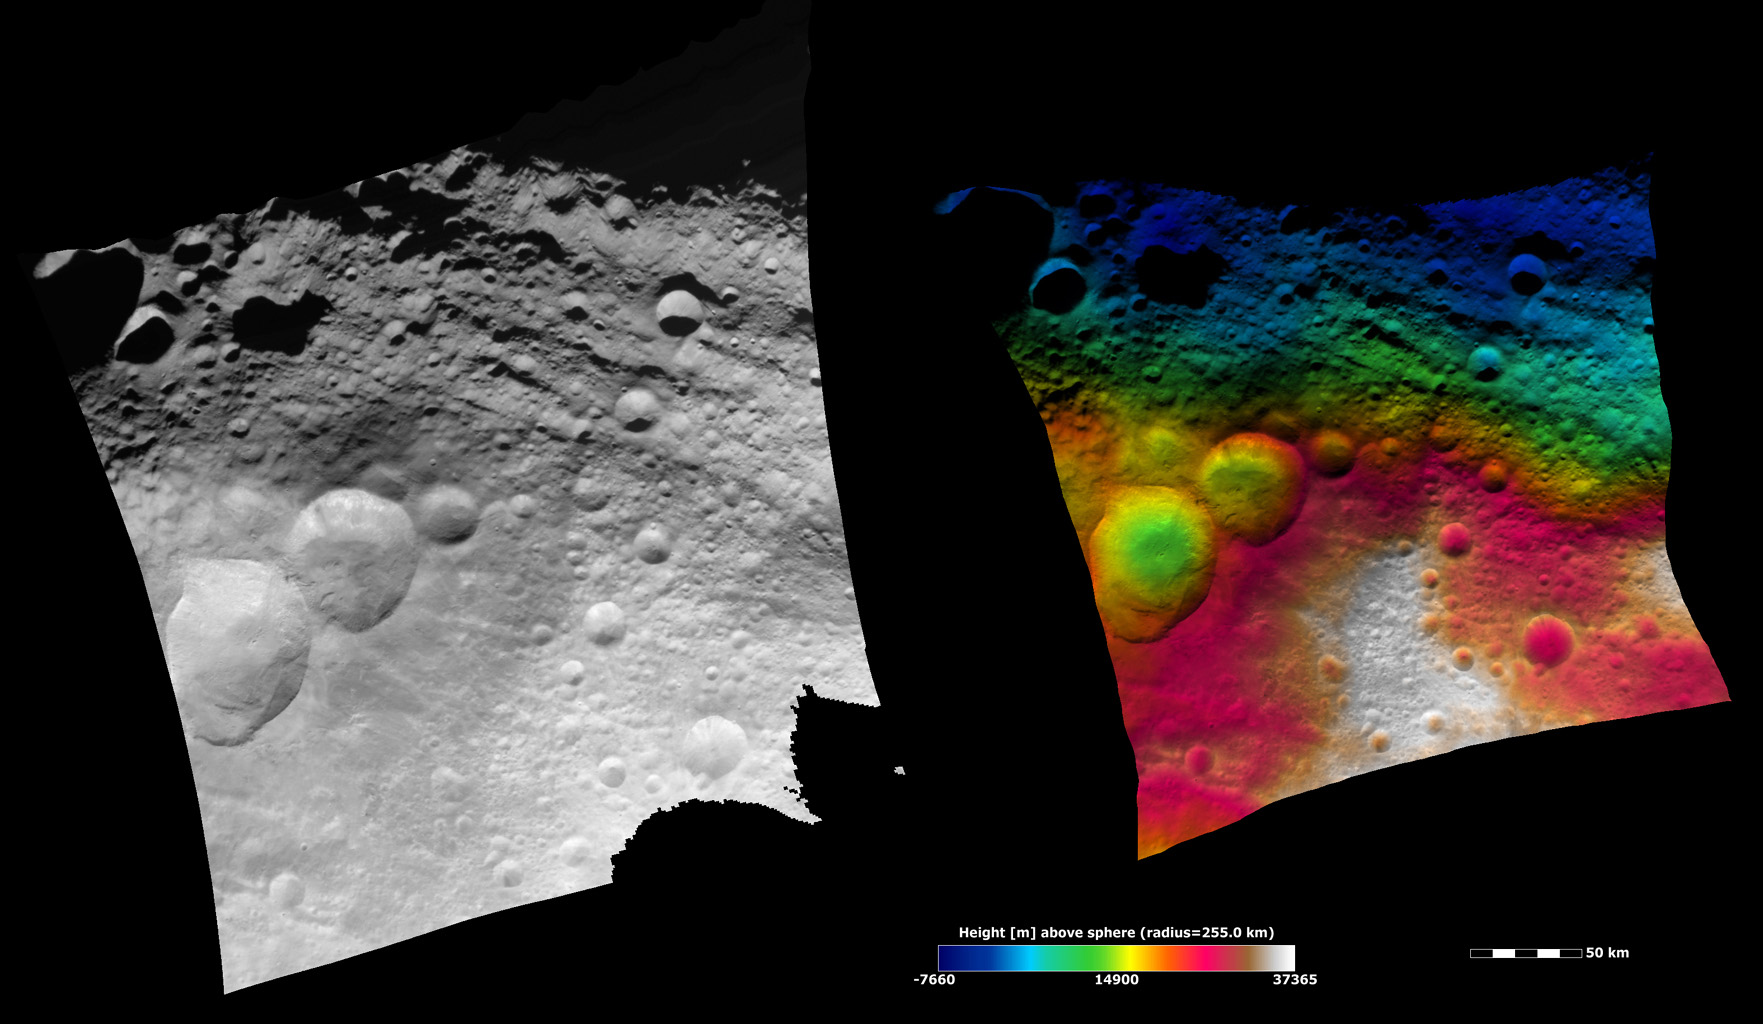 NASA's Dawn spacecraft shows the area surrounding the 'snowman craters' in asteroid Vesta's northern hemisphere.